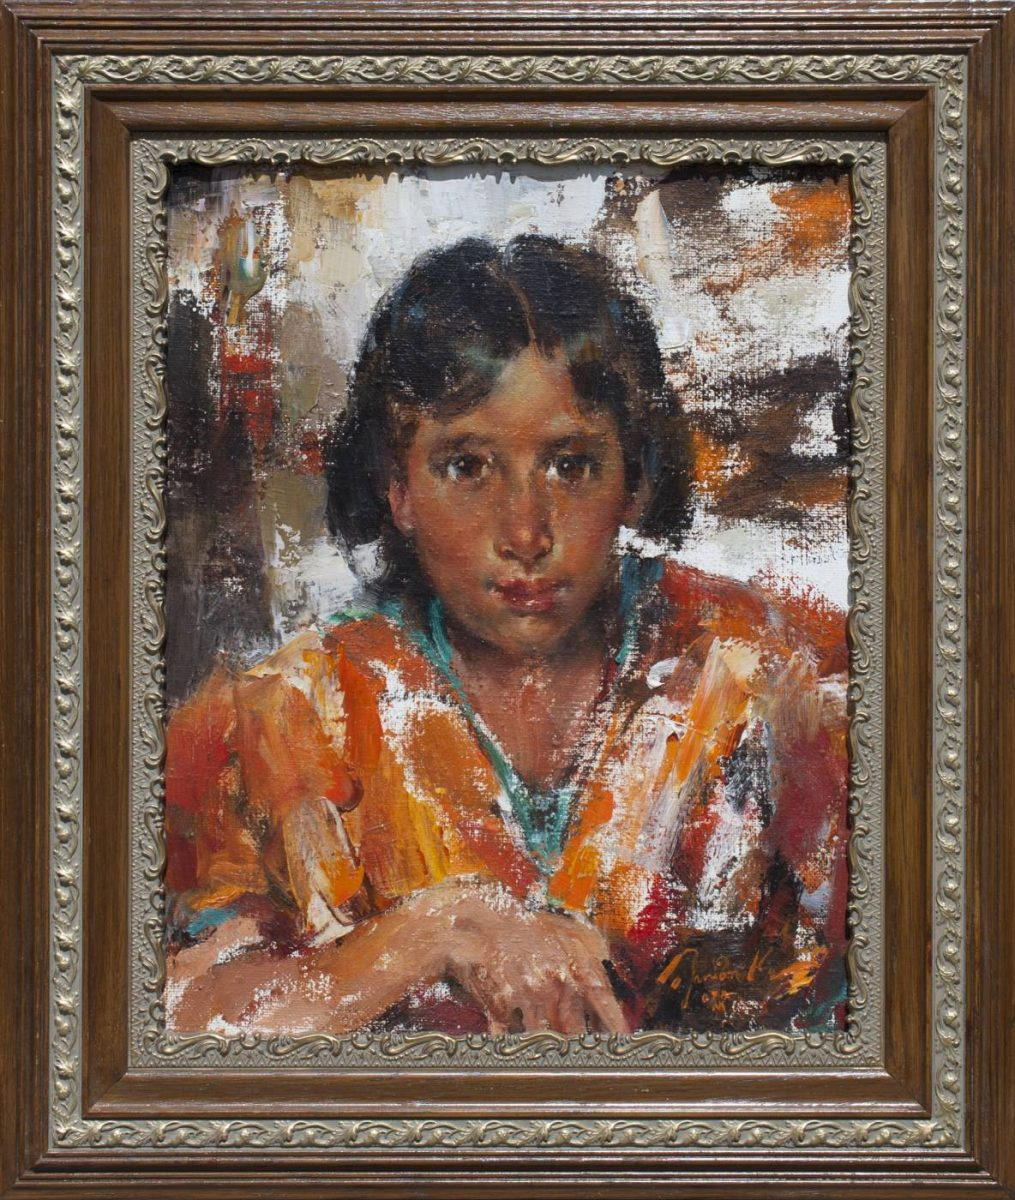 Pablita Taos Indian Girl painting by Ramon Kelley